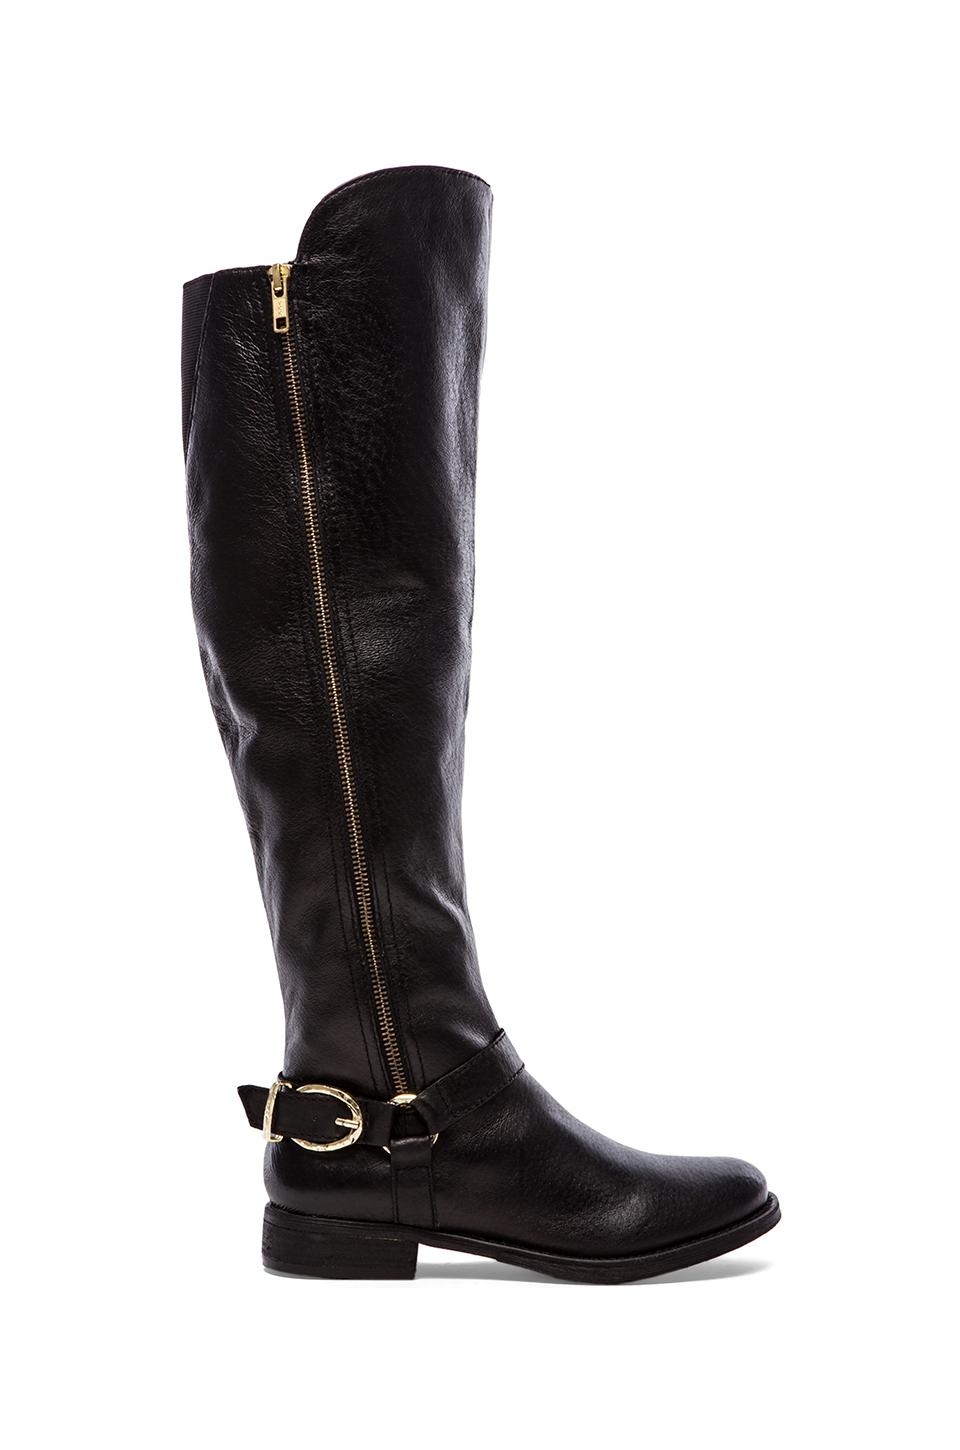 Steve Madden Skippur Boot in Black